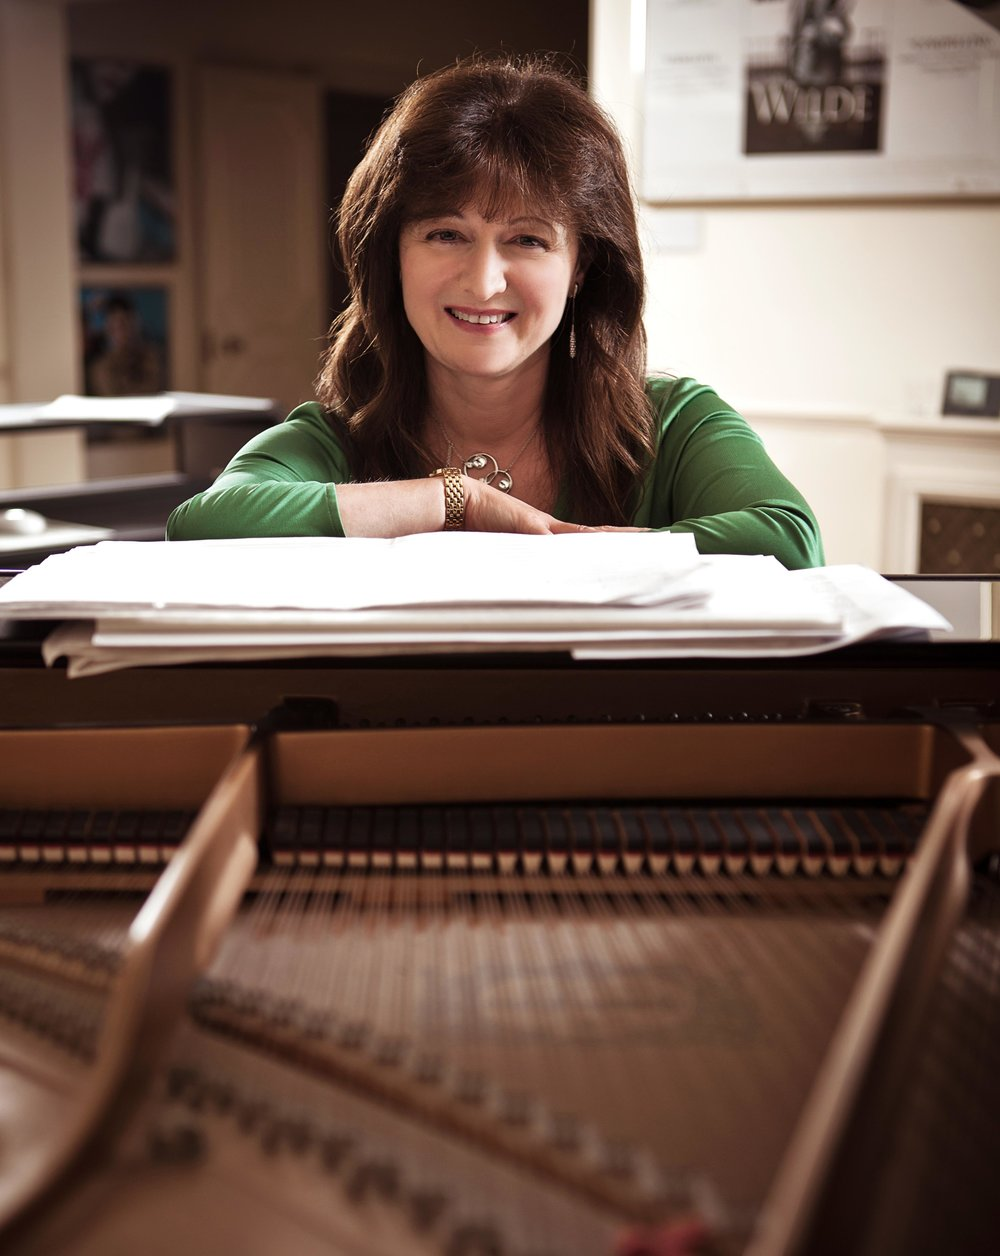 DEBBIE WISEMAN MBE : music composer Throughout the past 20 years, there are probably few people in the UK who have not heard a theme from one of Debbie's films or television productions. Whether it is watching Stephen Fry bring to life Oscar WILDE for the big screen, hearing the latest political commentary on a Sunday morning with Andrew Marr, or revelling in the Tudor world of Thomas Cromwell in WOLF HALL, Wiseman has gifted us iconic themes of beauty and passion, love and laughter. Her credits, over 200 of them, for the big and small screen, include WOLF HALL, JUDGE JOHN DEED, WILDE, HAUNTED, OTHELLO, TOM & VIV, JEKYLL, THE INSPECTOR LYNLEY MYSTERIES, THE PASSION, THE GUILTY, BEFORE YOU GO, ARSENE LUPIN,  TOM'S MIDNIGHT GARDEN, LOST CHRISTMAS,  THE PROMISE, A POET IN NEW YORK, THE ANDREW MARR SHOW,  THE CORONER and EDIE director Simon Hunter's first feature LIGHTHOUSE.  Debbie is a Visiting Professor at the Royal College of Music and is Classic FM's composer in residence. Some of Debbie's work can be heard on her website HERE.